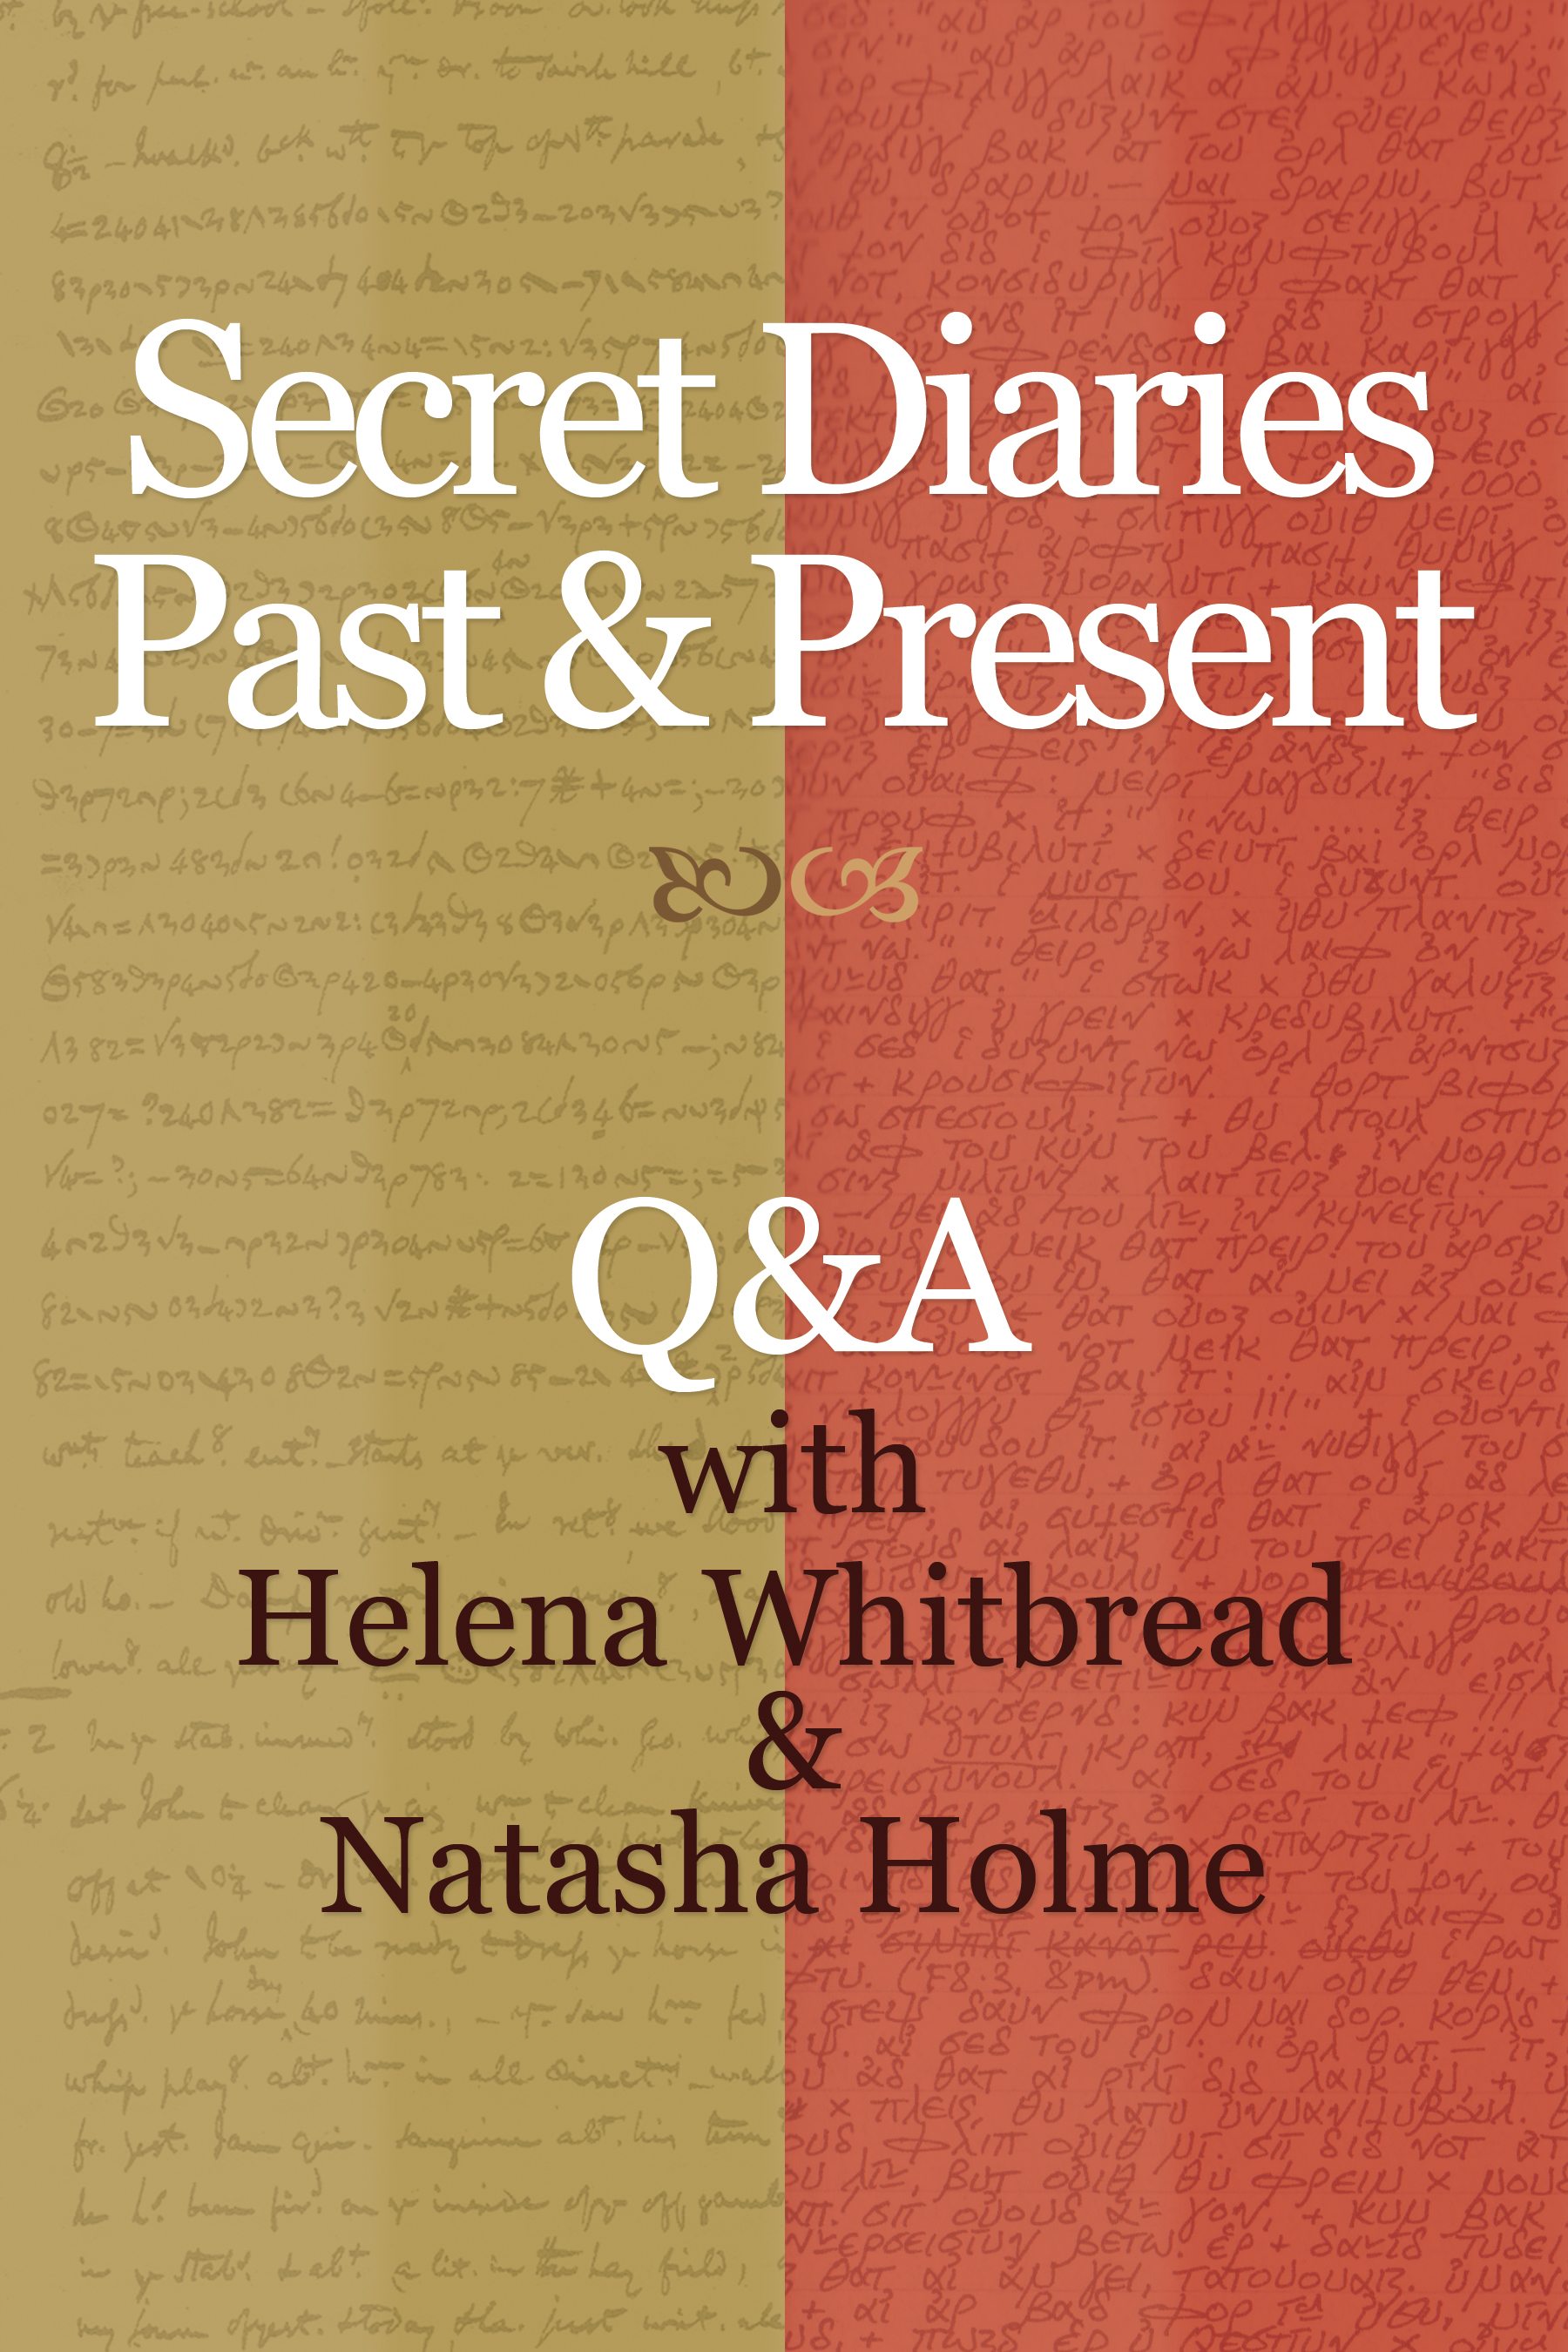 Secret Diaries Past & Present, an Ebook by Natasha Holme & Helena Whitbread